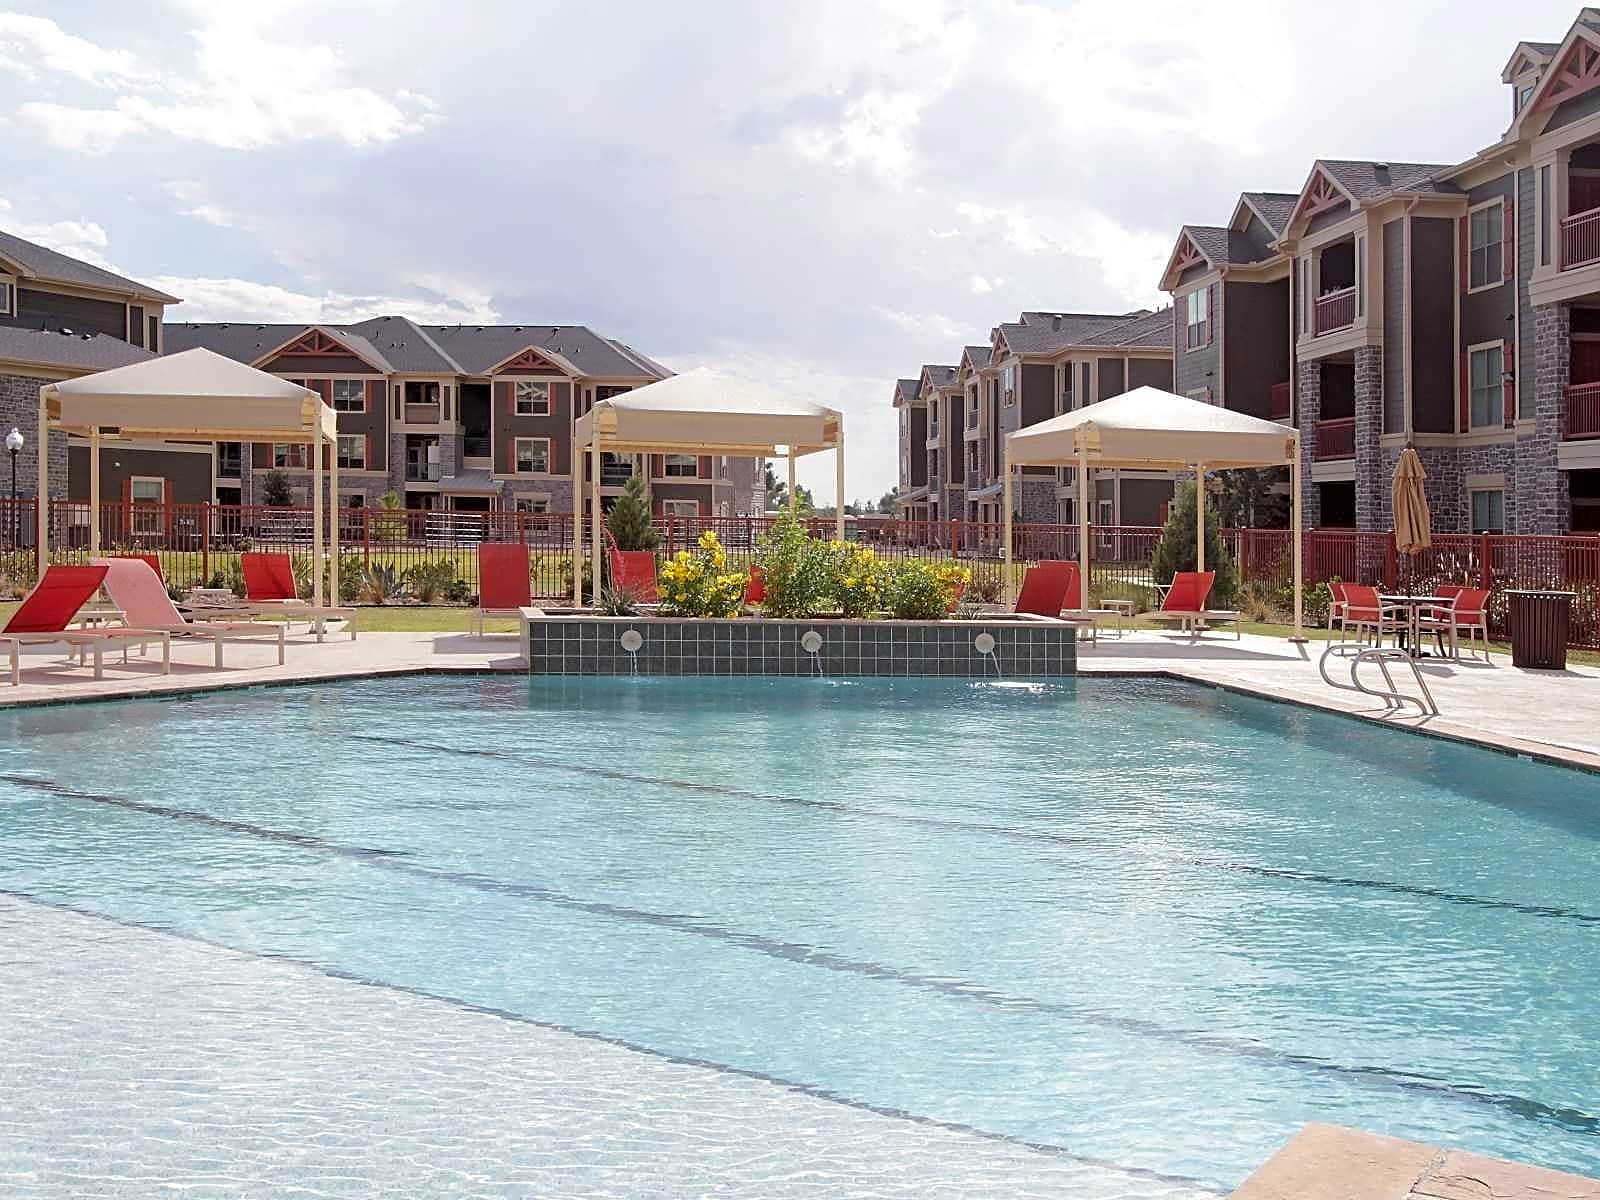 Apartments Near UTPB Faudree Ranch Apartments for The University of Texas of the Permian Basin Students in Odessa, TX